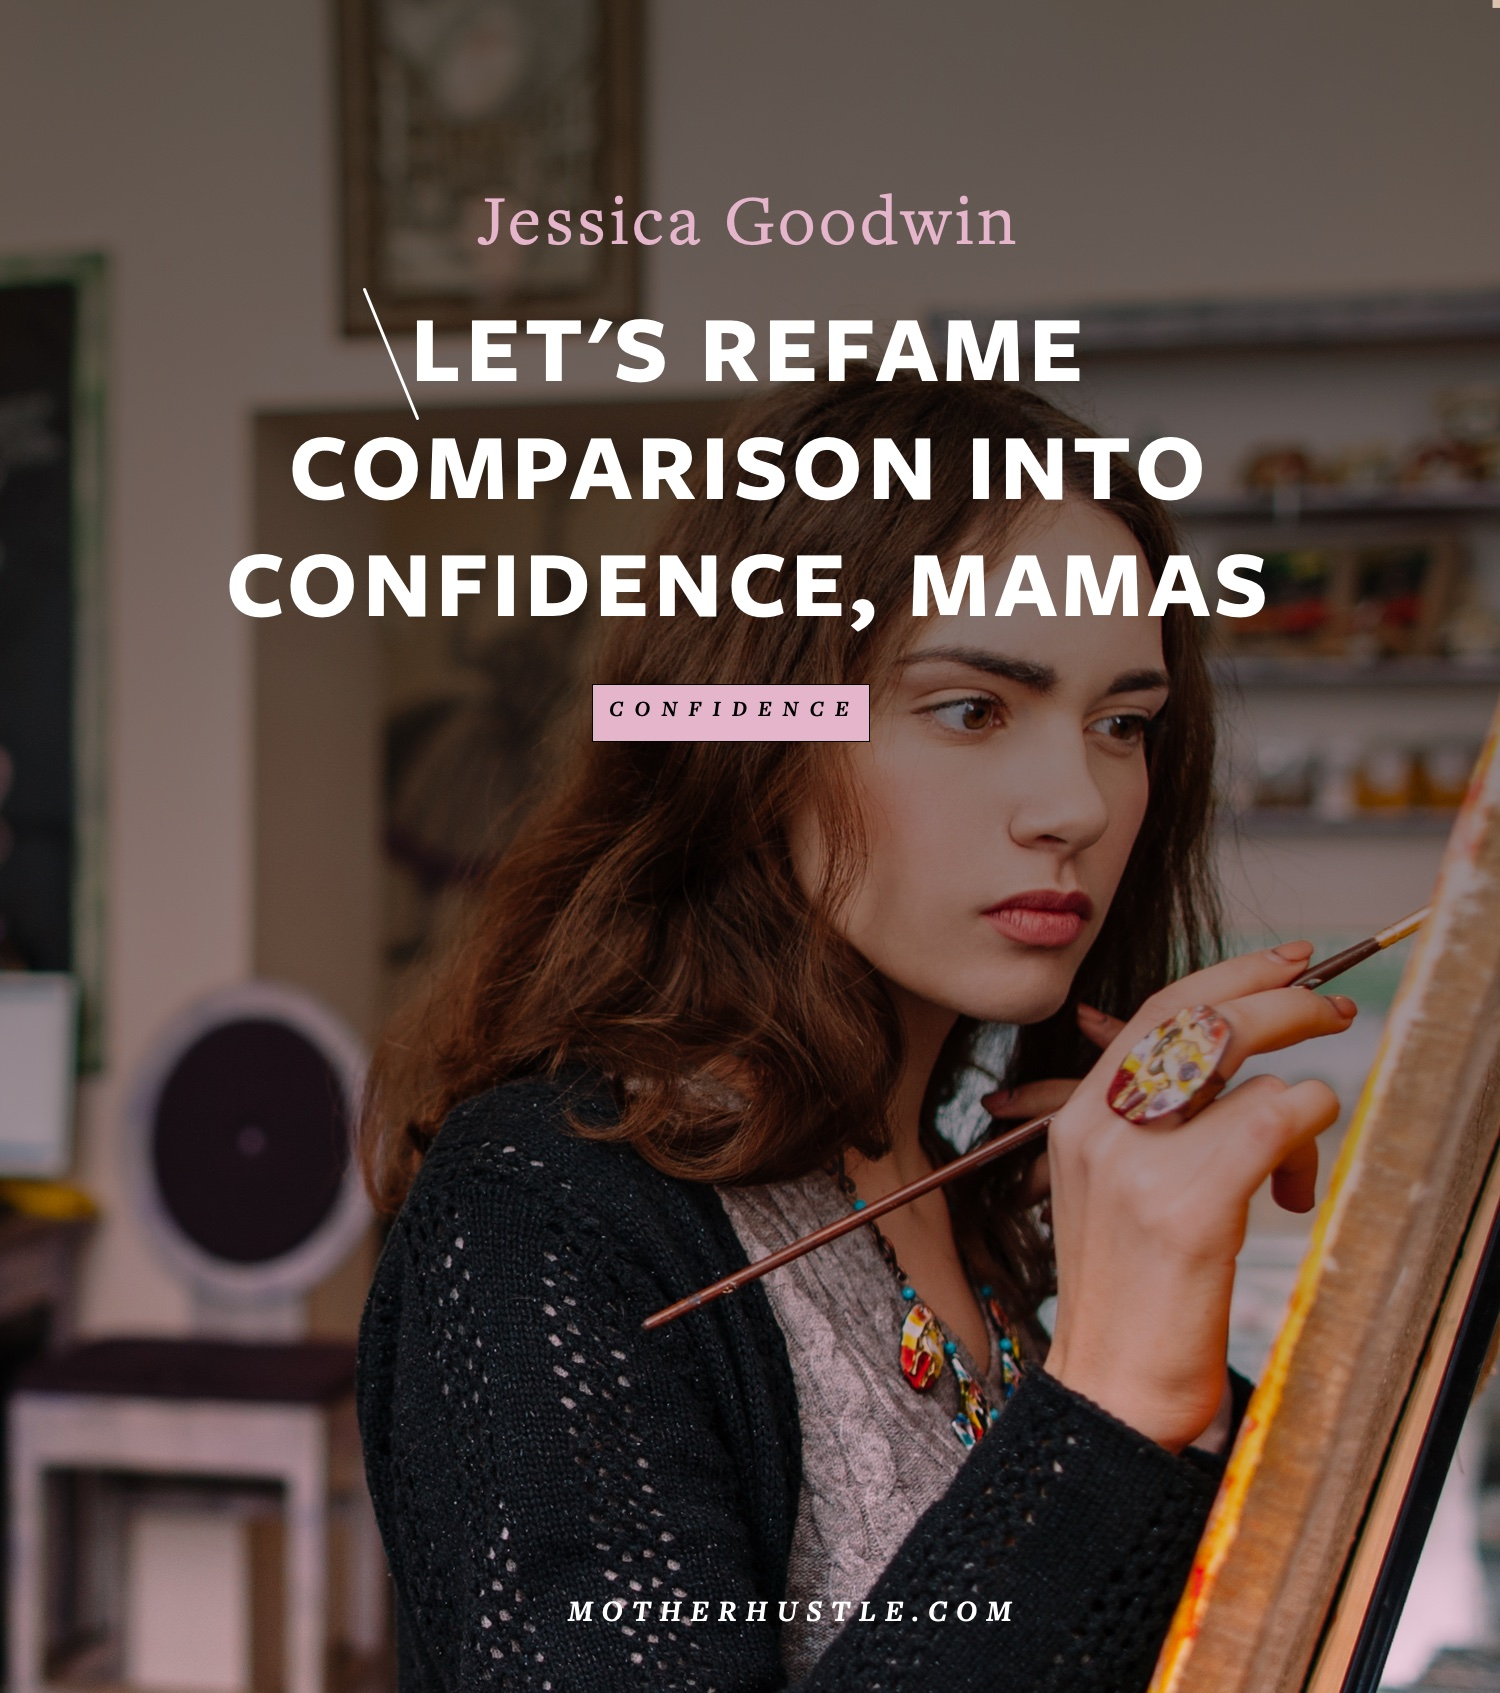 Let's Reframe Comparison into Confidence, Mamas -by Jessica Goodwin for MotherHustle